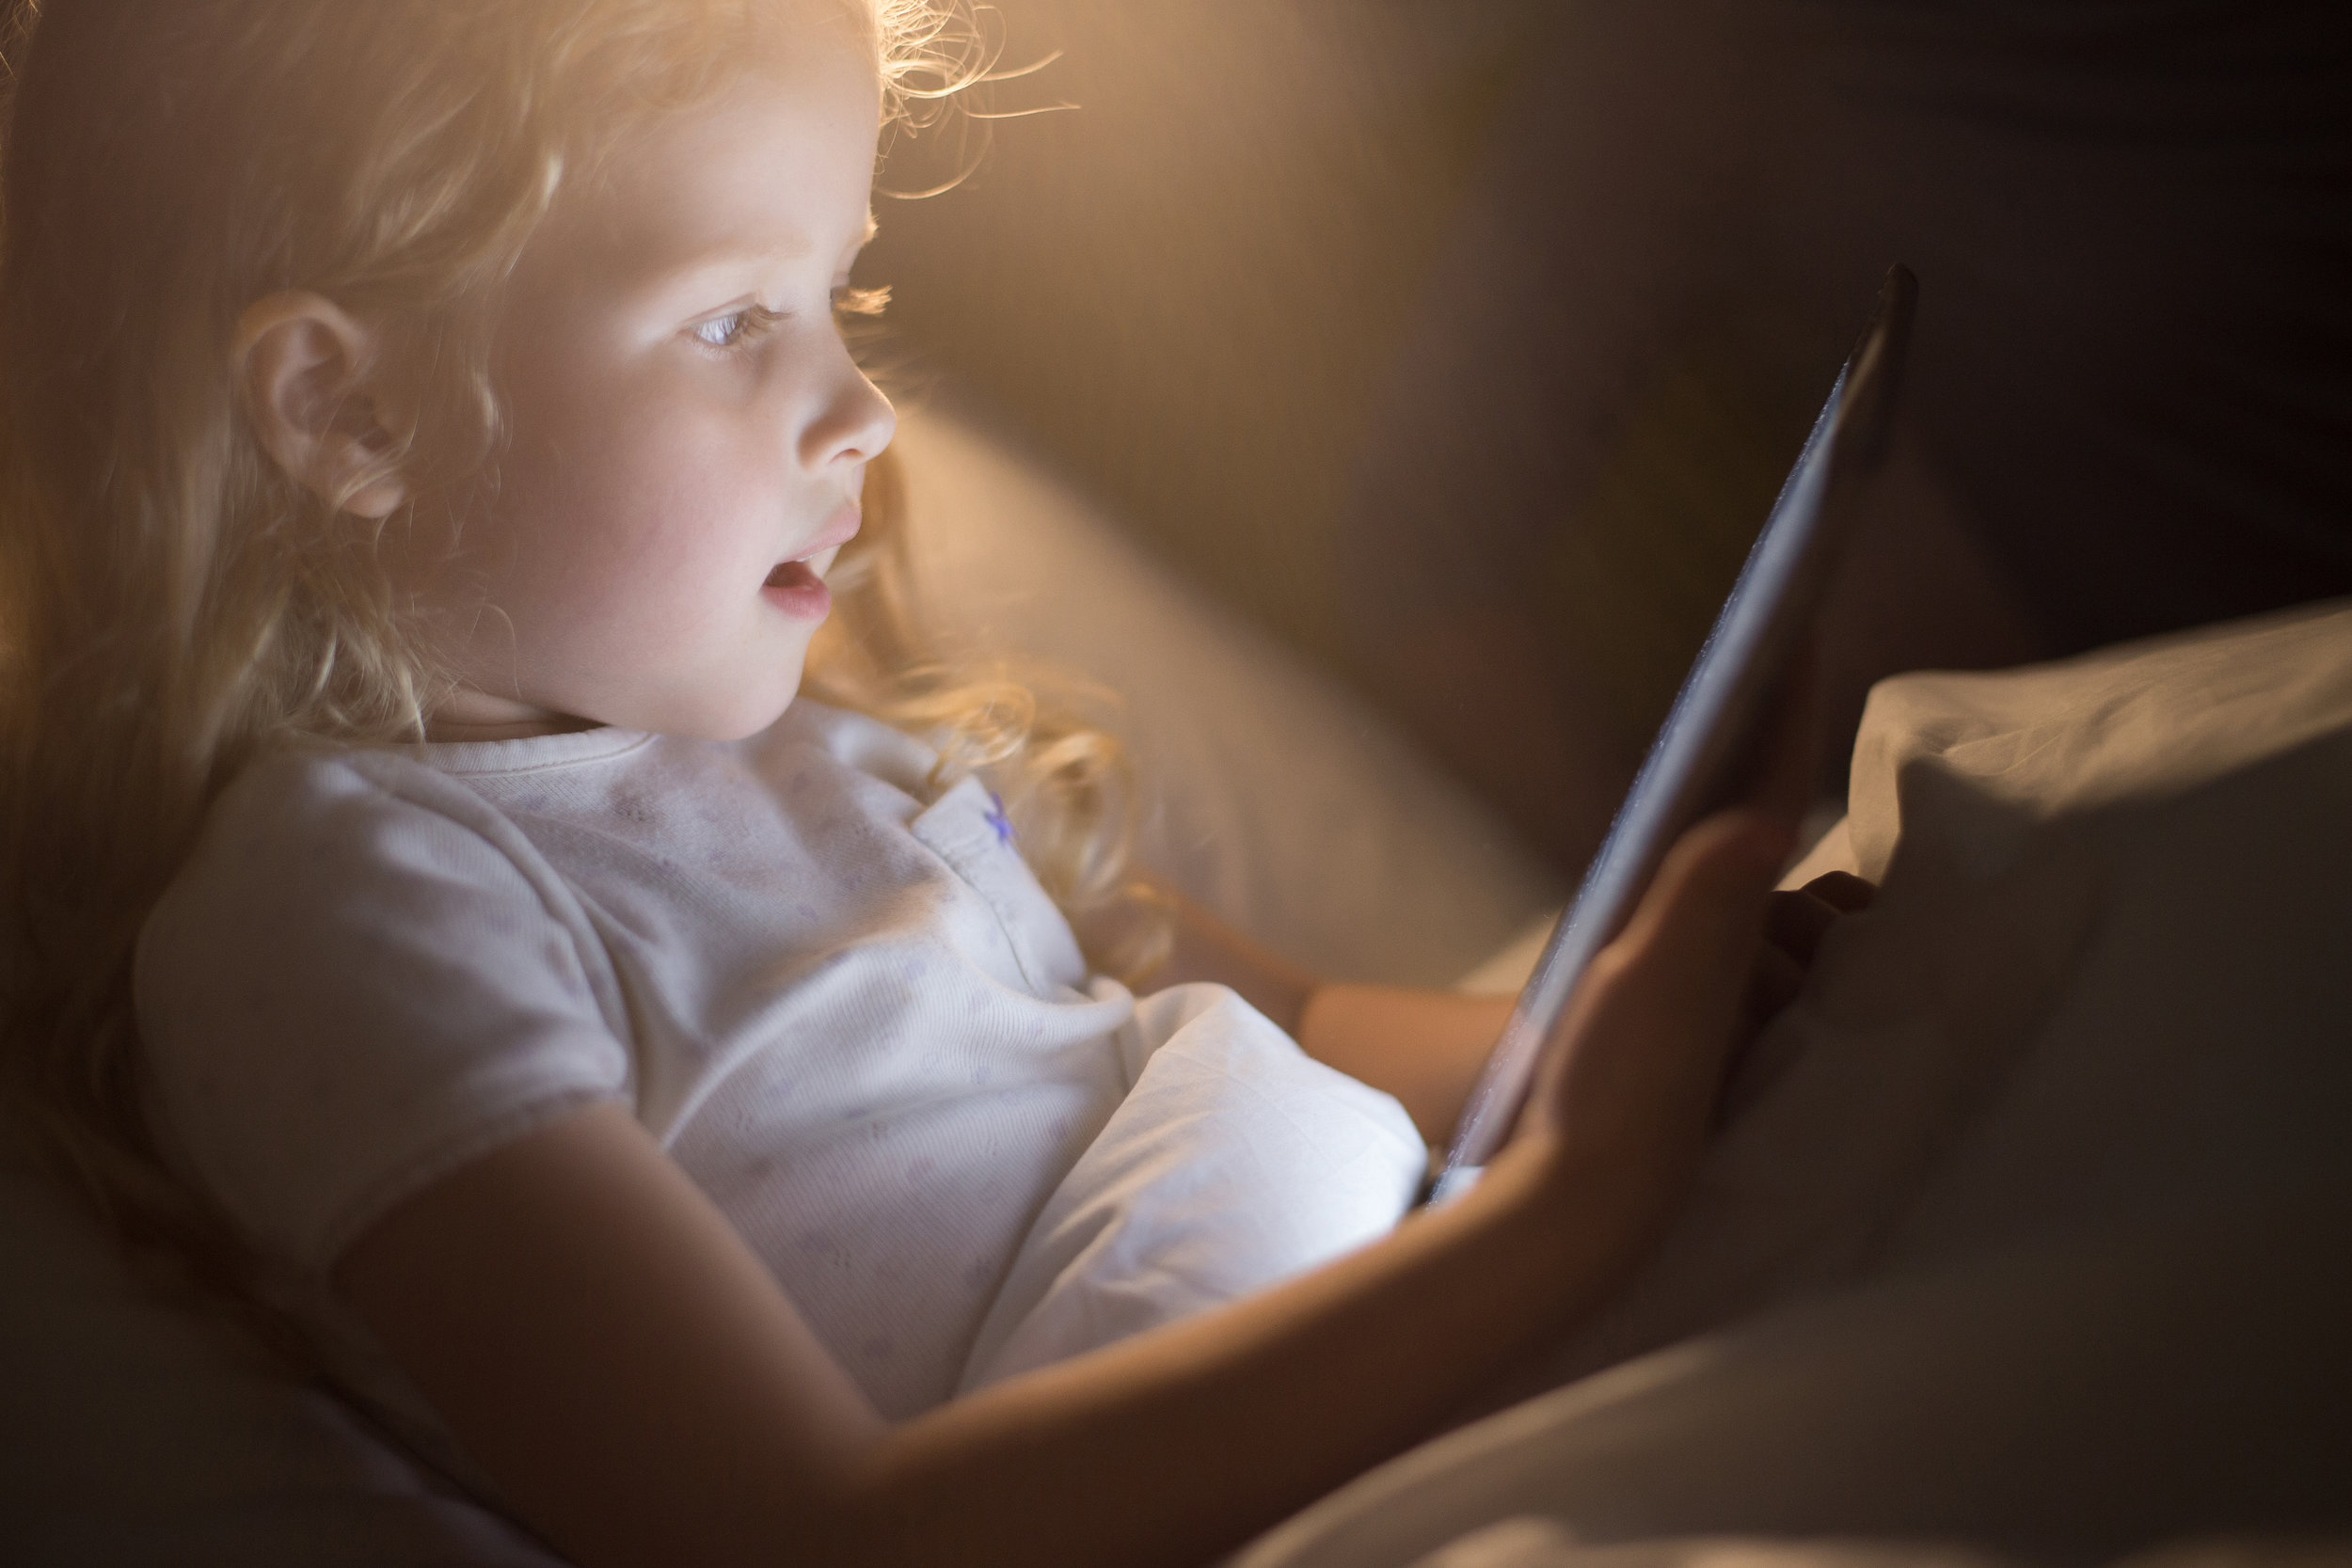 Side_view_portrait_of_adorable_little_girl_looking_amazed_with_mouth_open_using_digital_tablet_lying_in_bed_at_night,_face_lit_by_screen_light_like_magic,_copy_space.jpeg